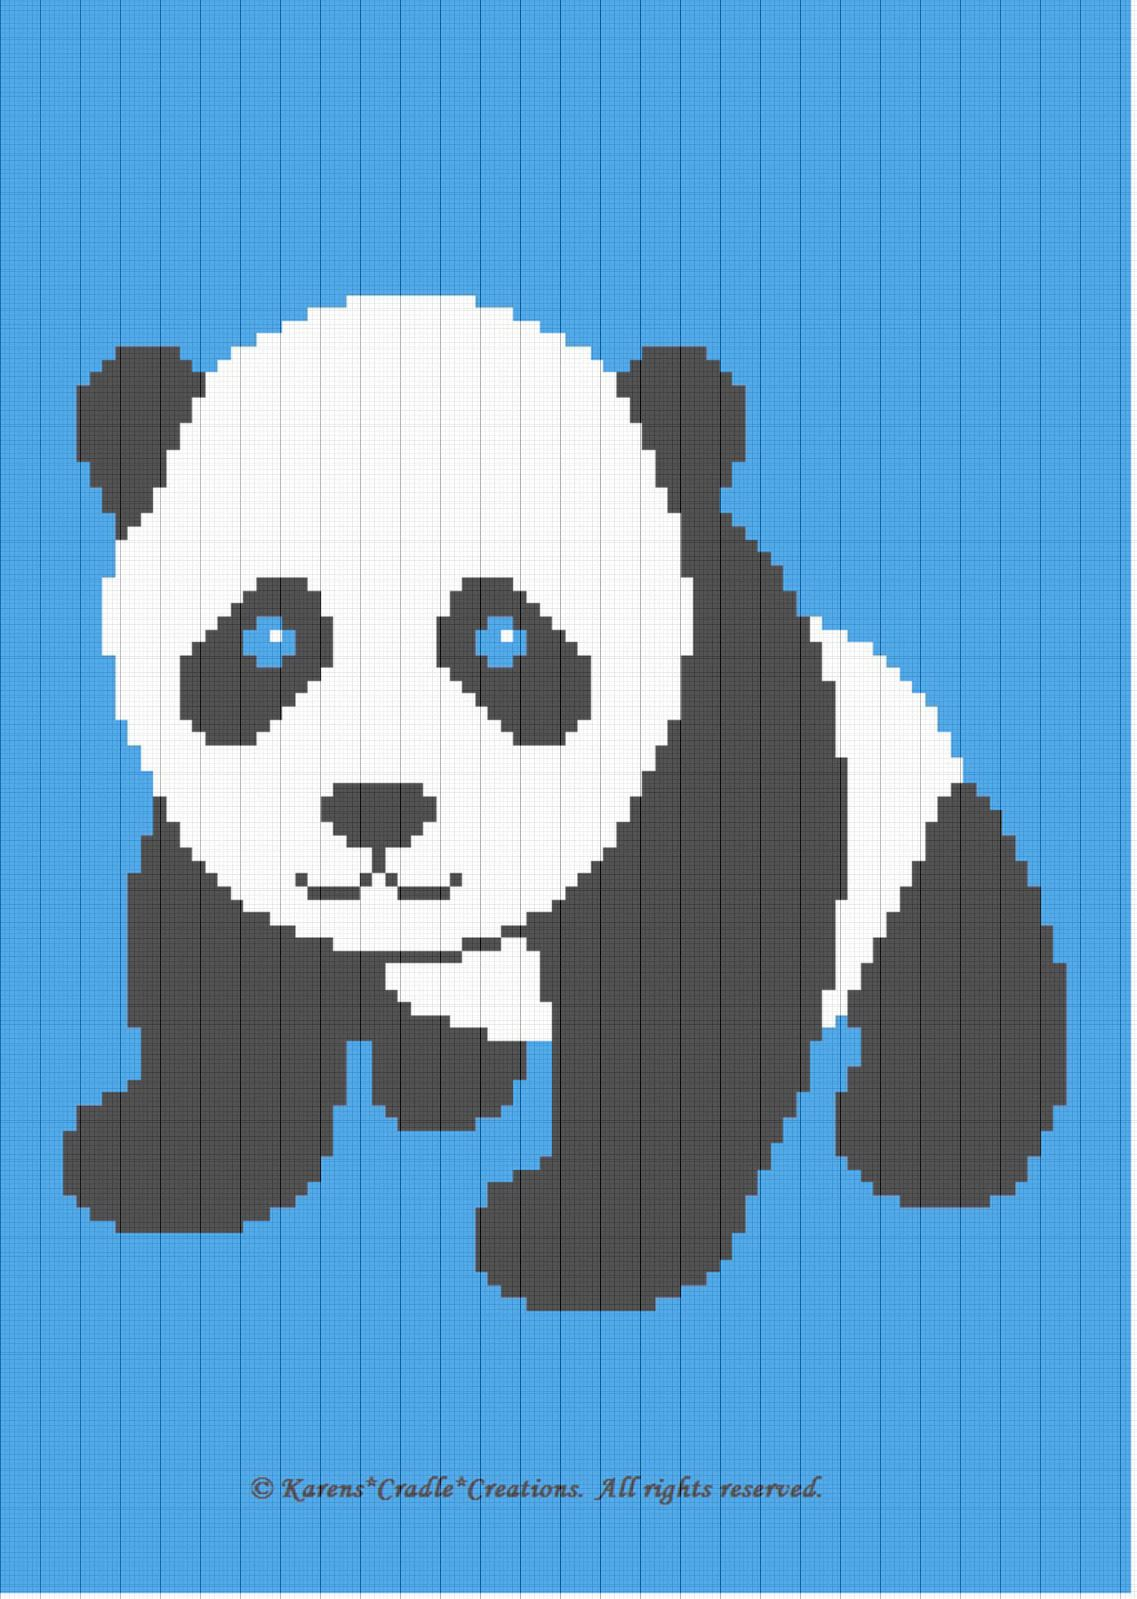 baby panda bear afghan pattern original graph pattern artwork karens cradle creations all rights reserved up for auction is a graph pattern that  [ 1137 x 1599 Pixel ]